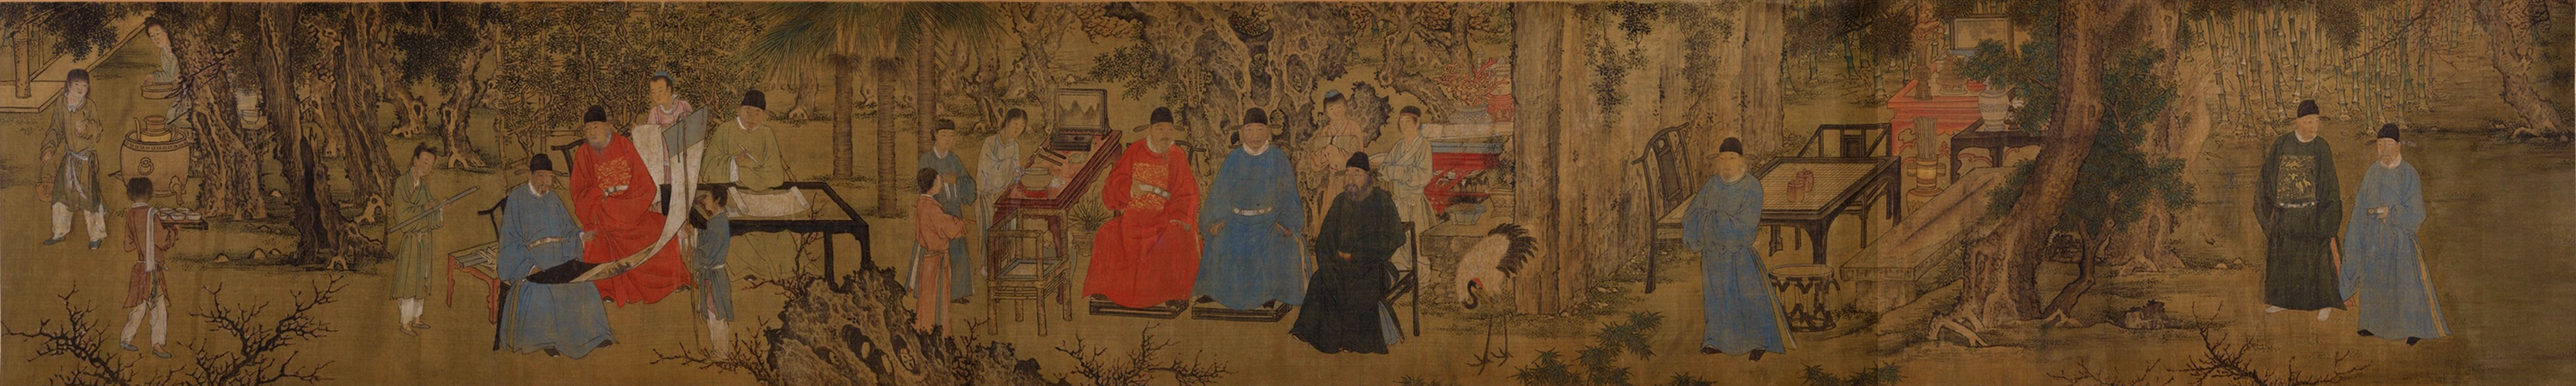 Chinese Gardens   Chinese Culture   China Online Museum